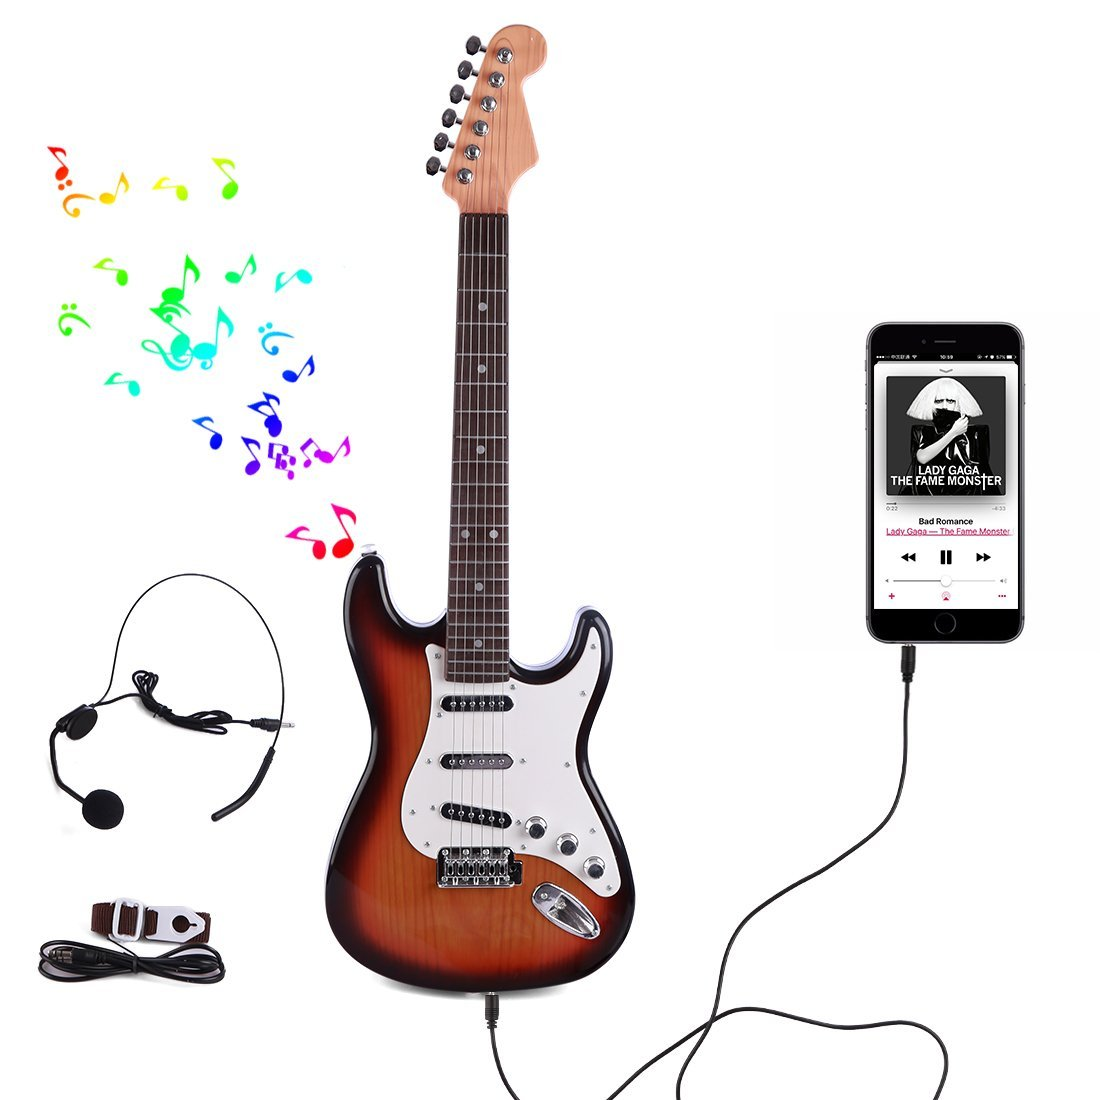 WOLFBUSH Kids Toy Guitar, 6 Strings Cool Music Guitar 26 Inches Musical Instruments Educational Toy for Children, with Microphone Headset + Data Cable